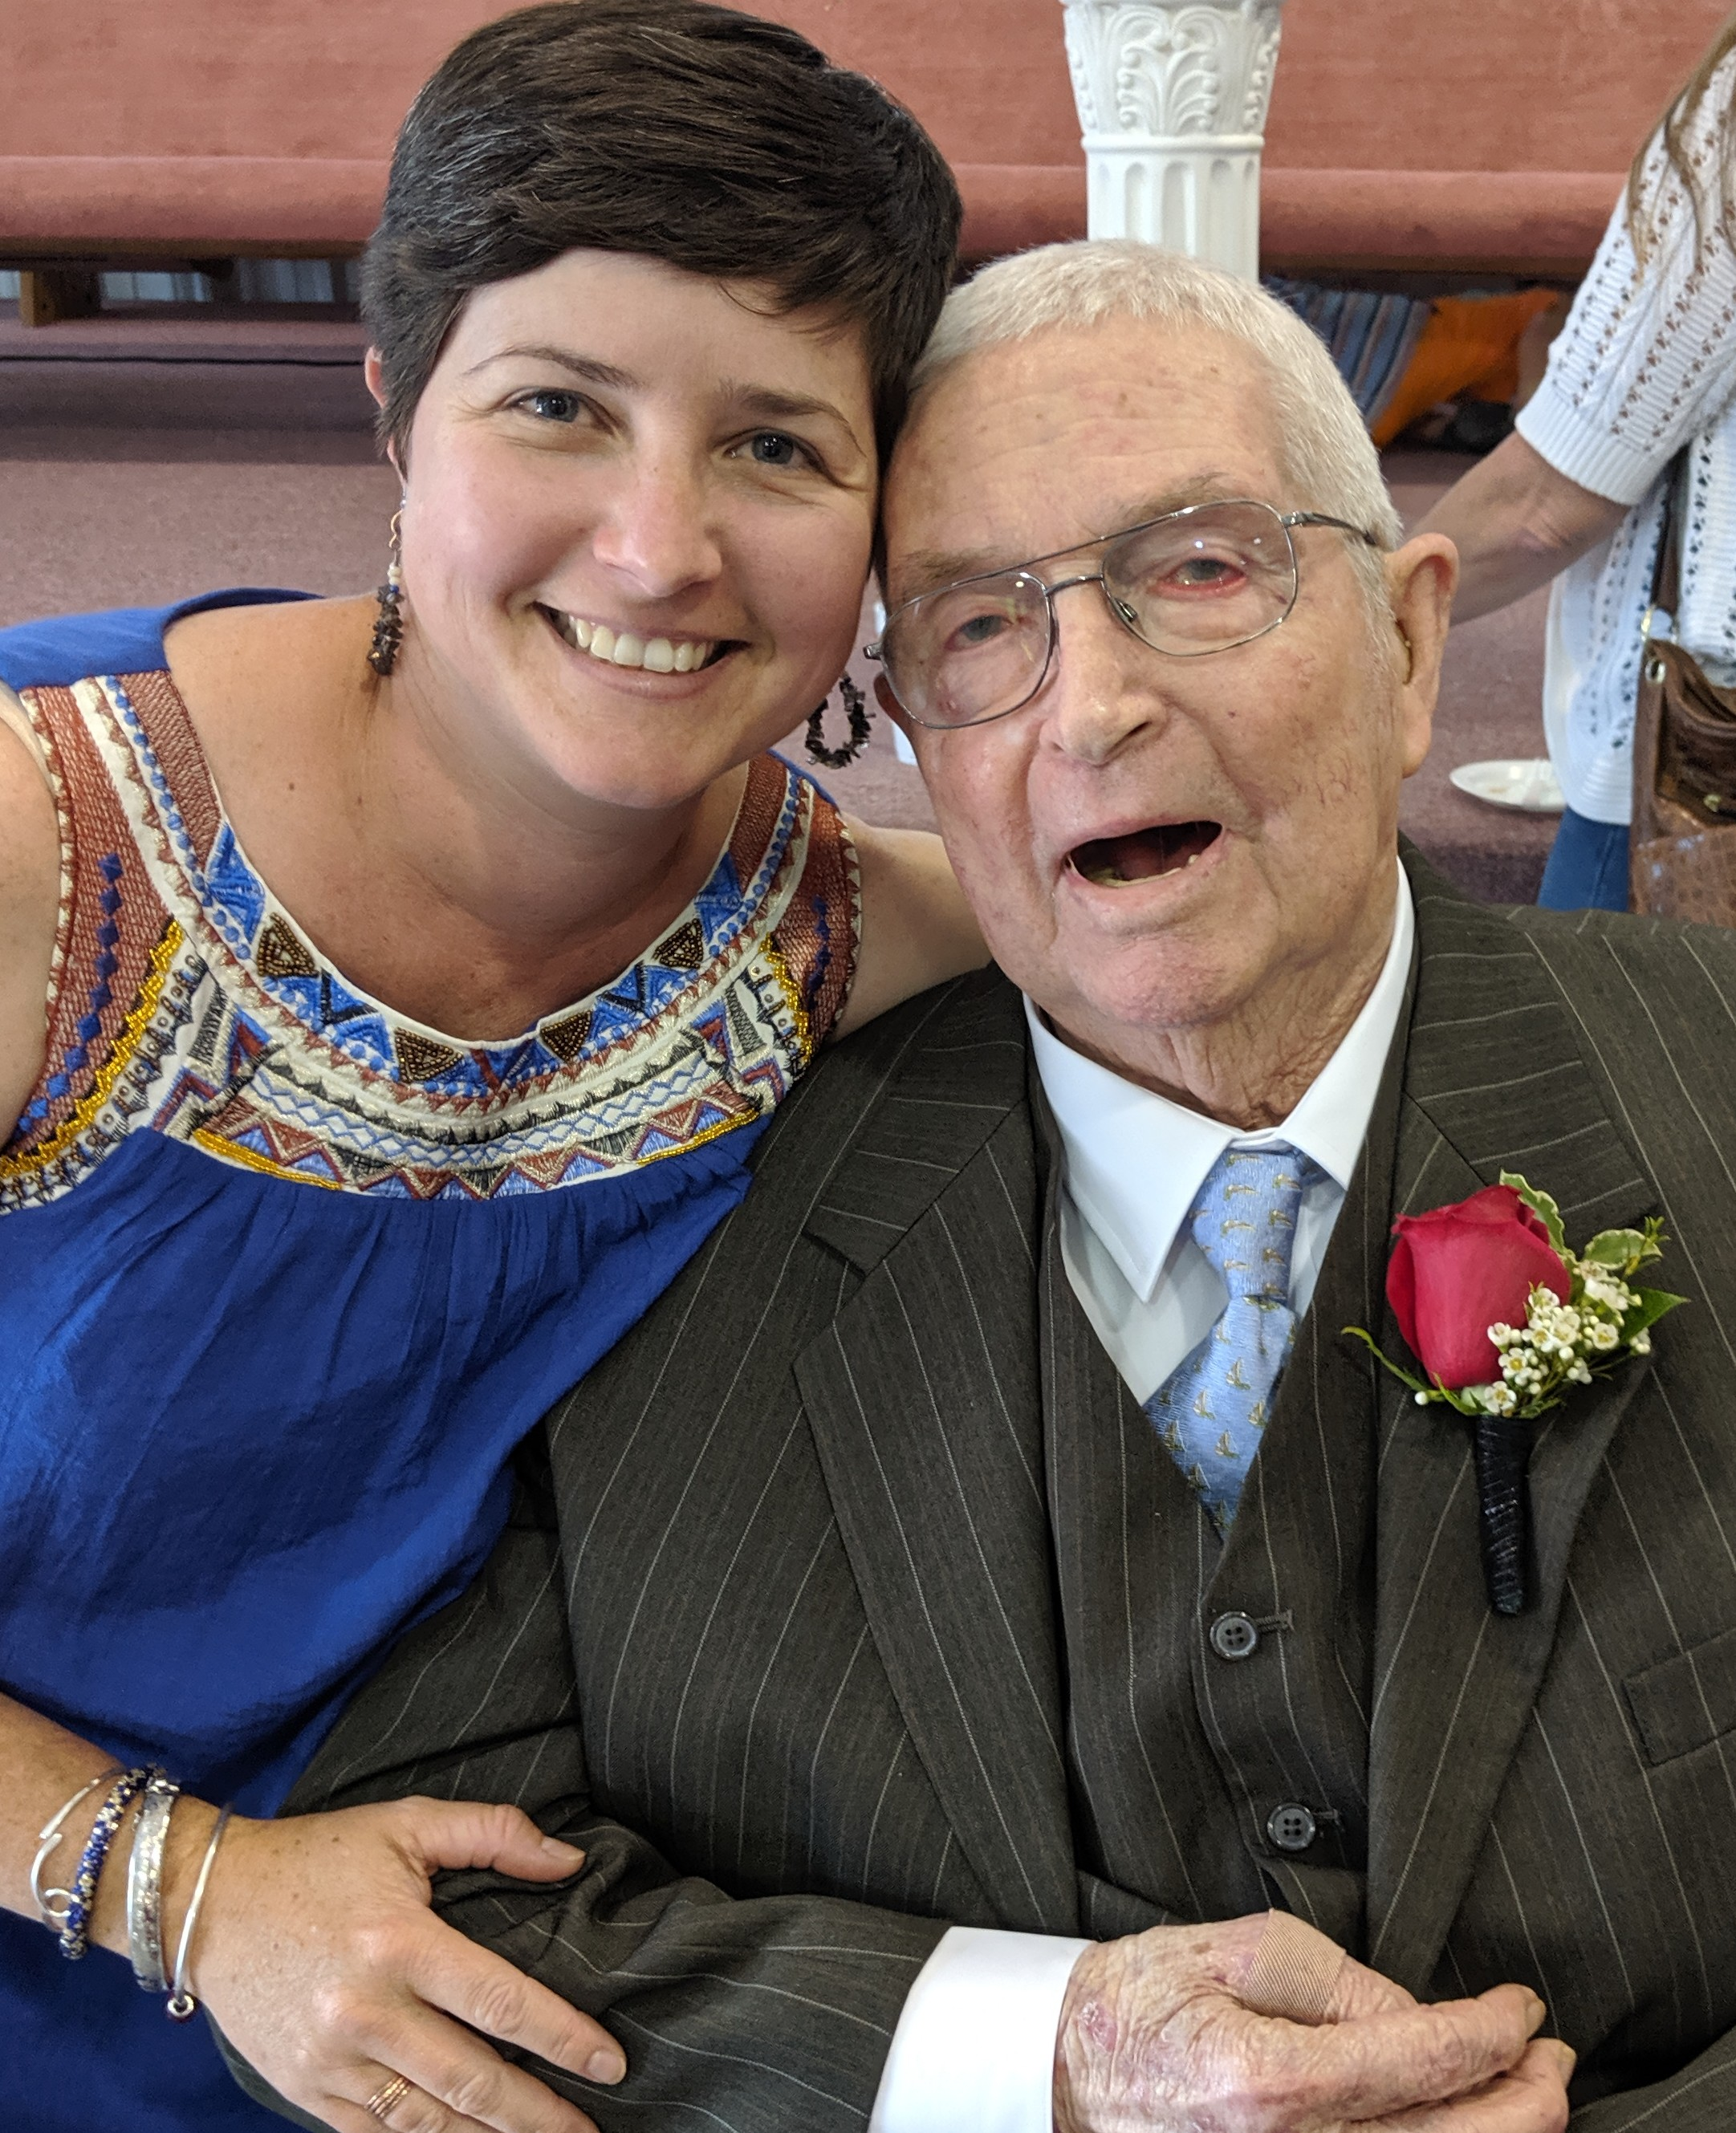 Pawpaw and I at his 90th birthday celebration.  He looks great in his suit and tie!